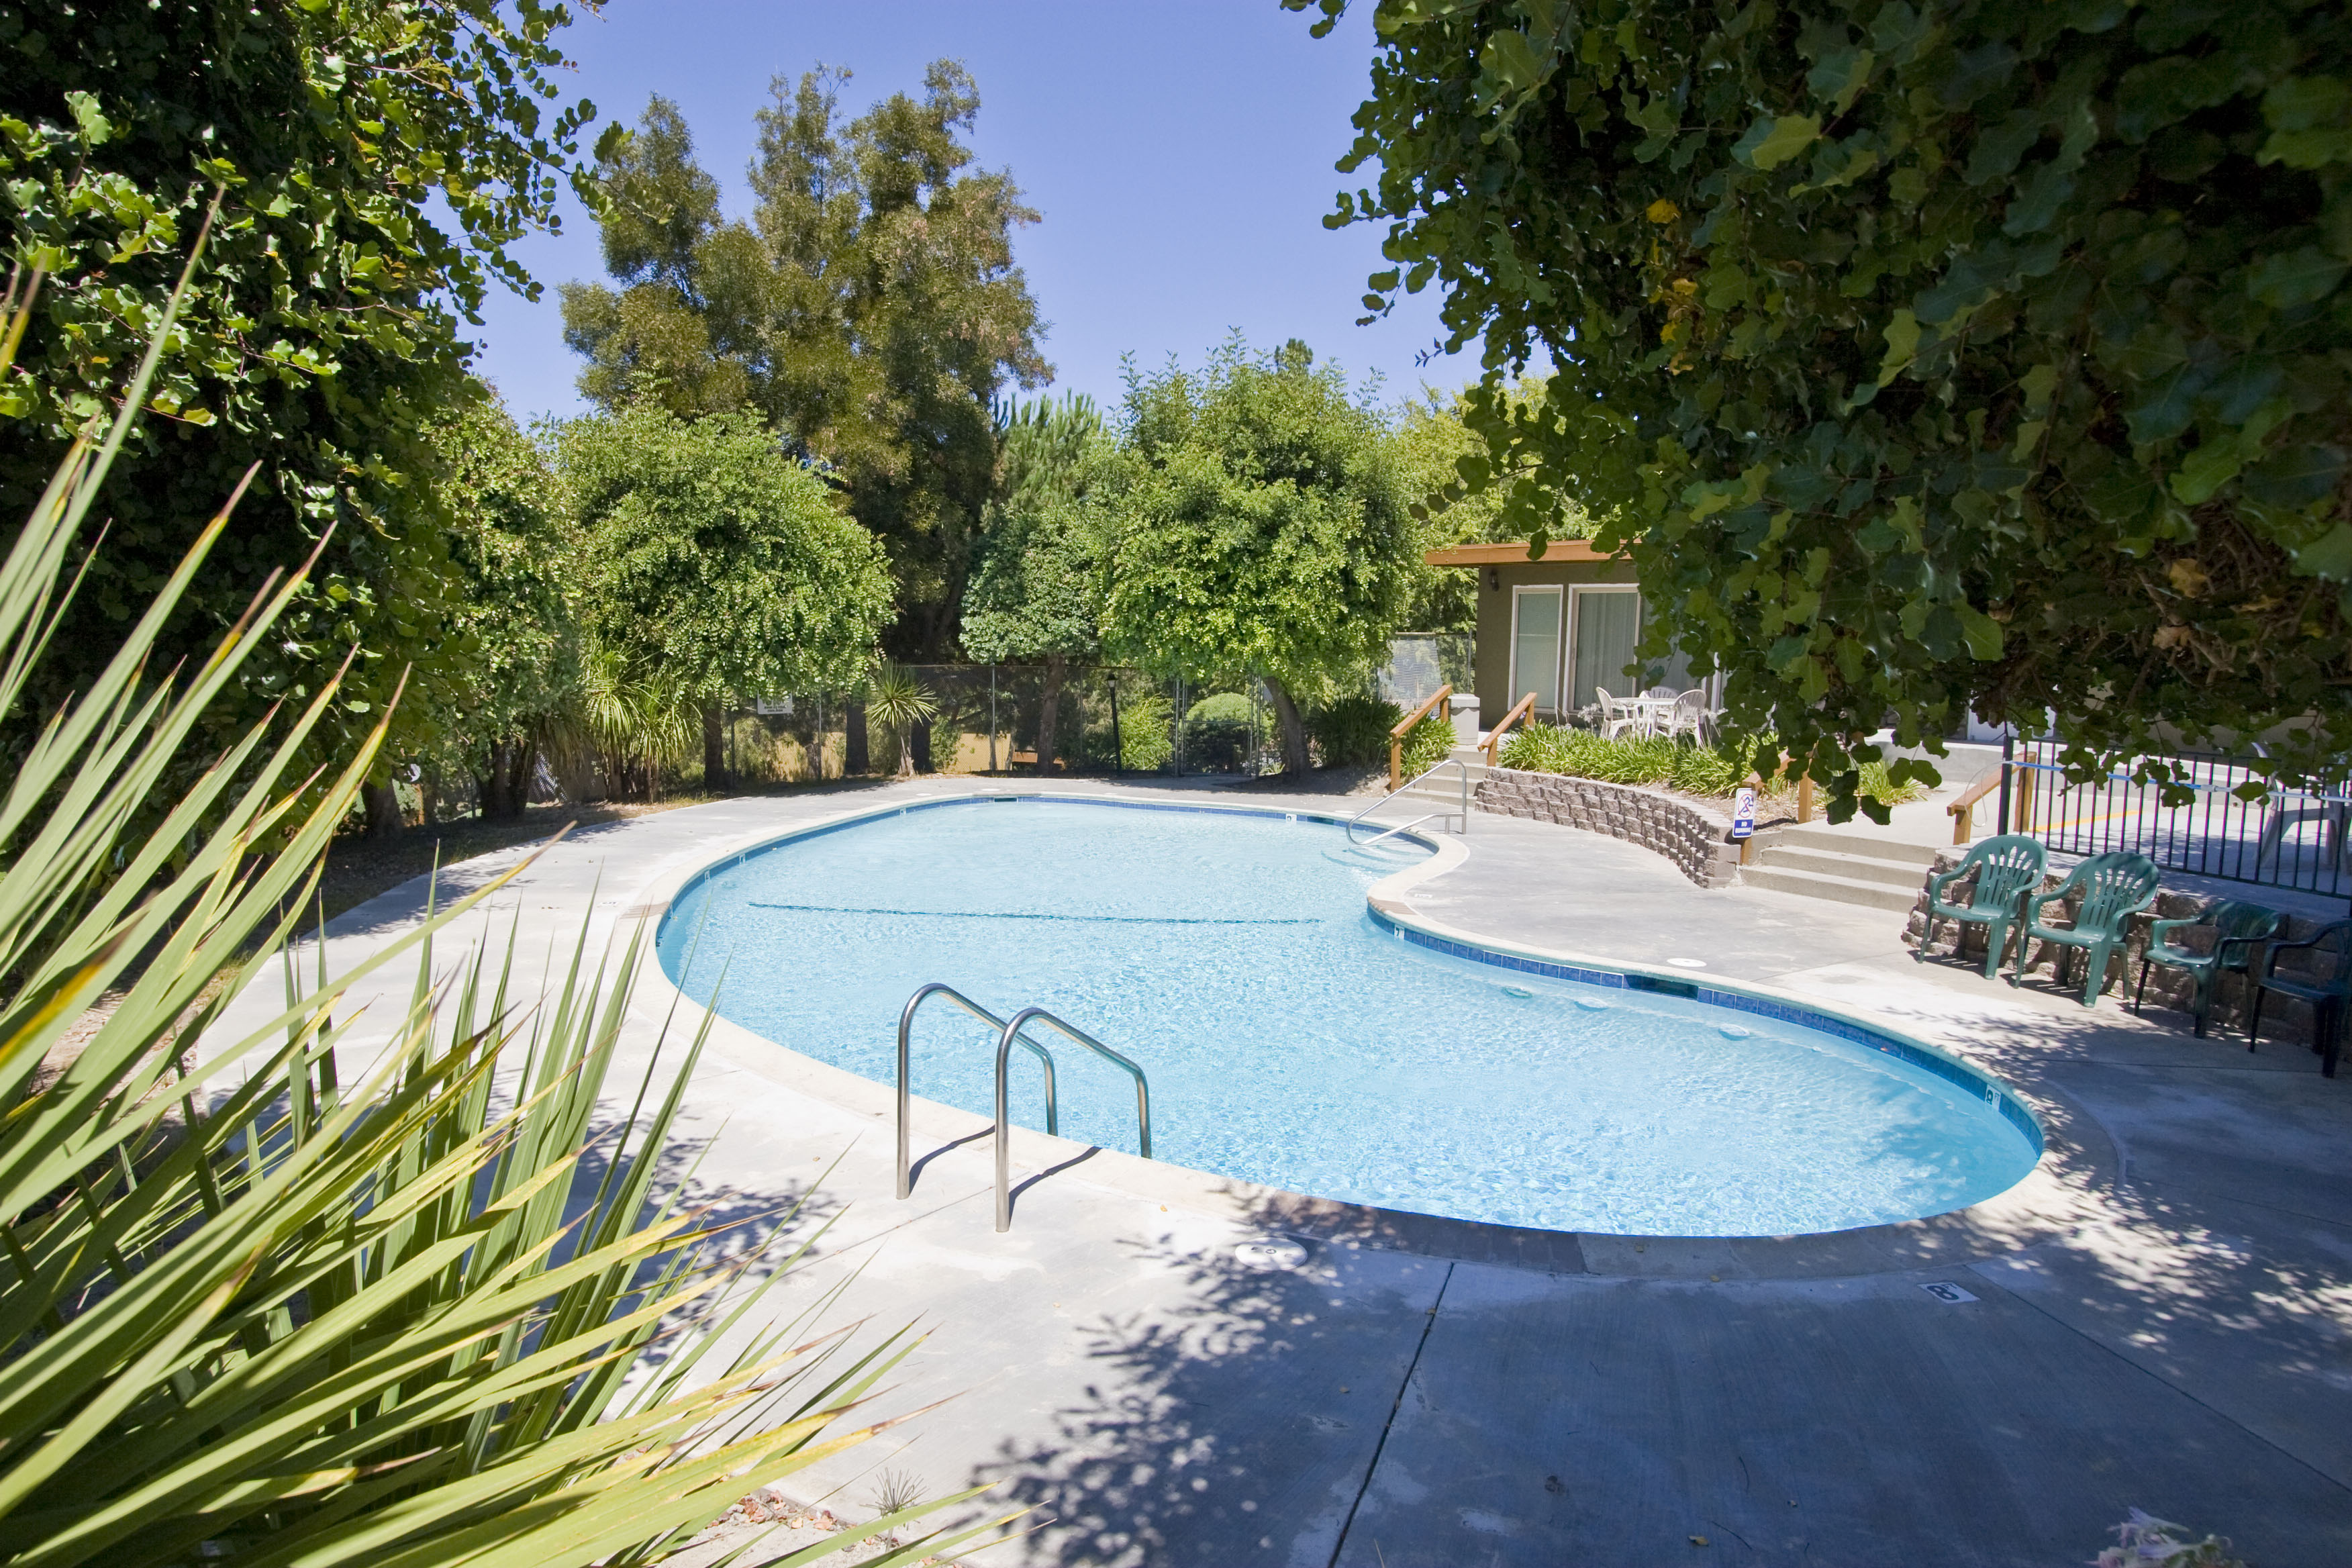 """Siena Pointe - Siena Pointe Apartments, affordable housing community located in the Hayward Hills, is a place where you will be able to say, """"my life just got better!""""  We strive to measure up to your highest standard"""